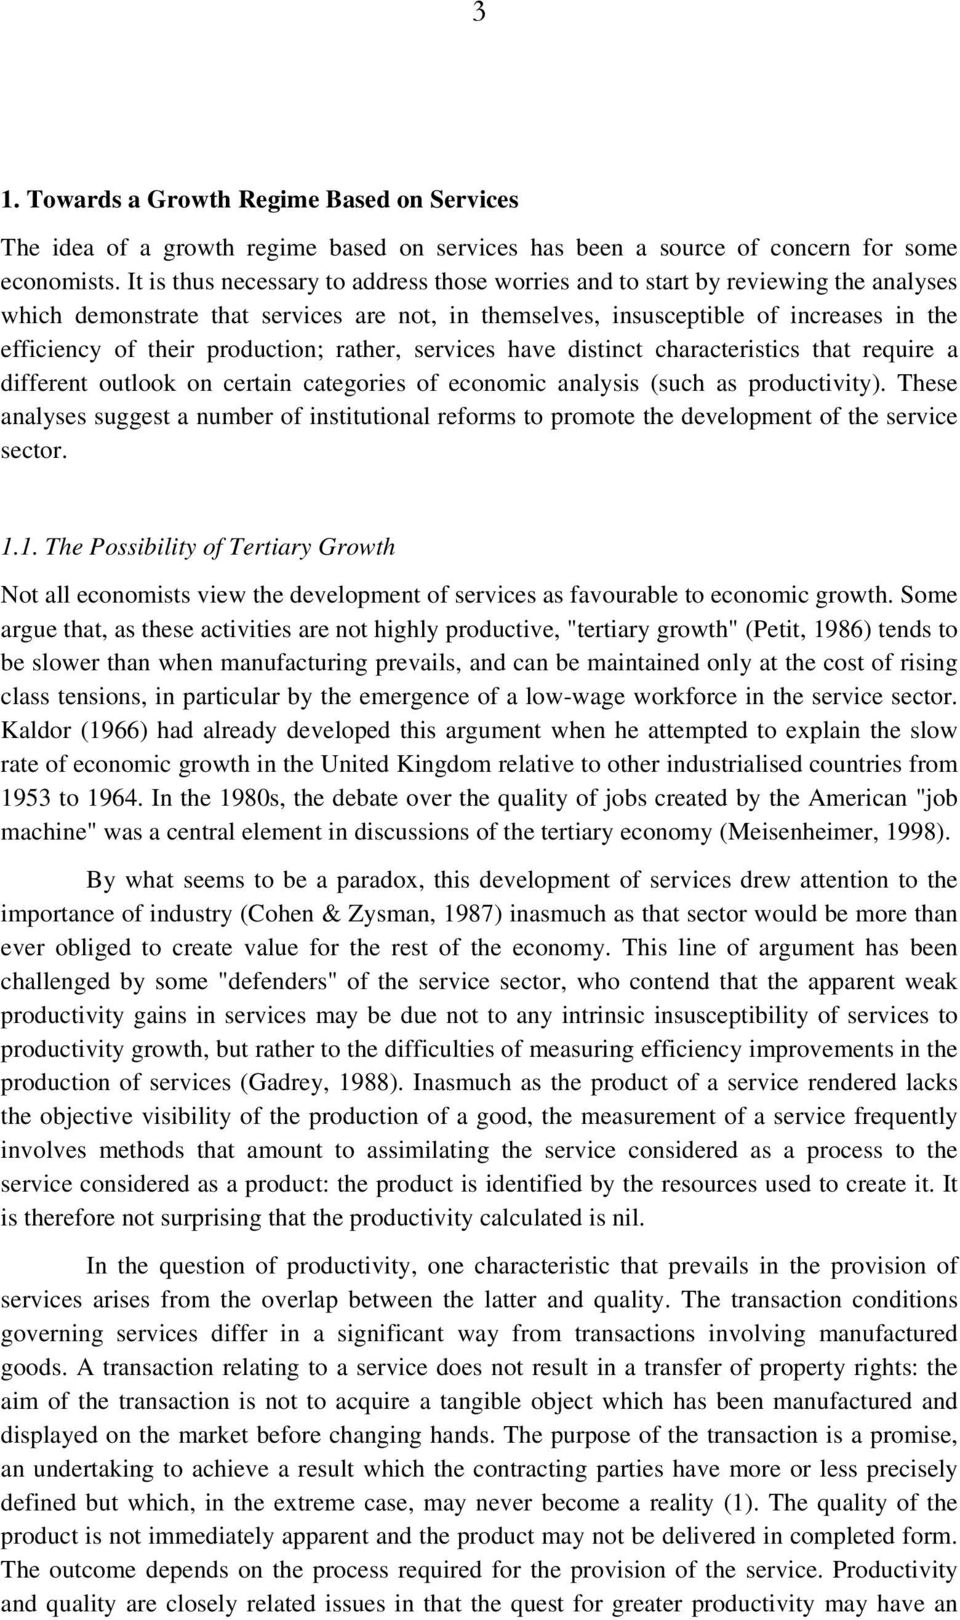 production; rather, services have distinct characteristics that require a different outlook on certain categories of economic analysis (such as productivity).